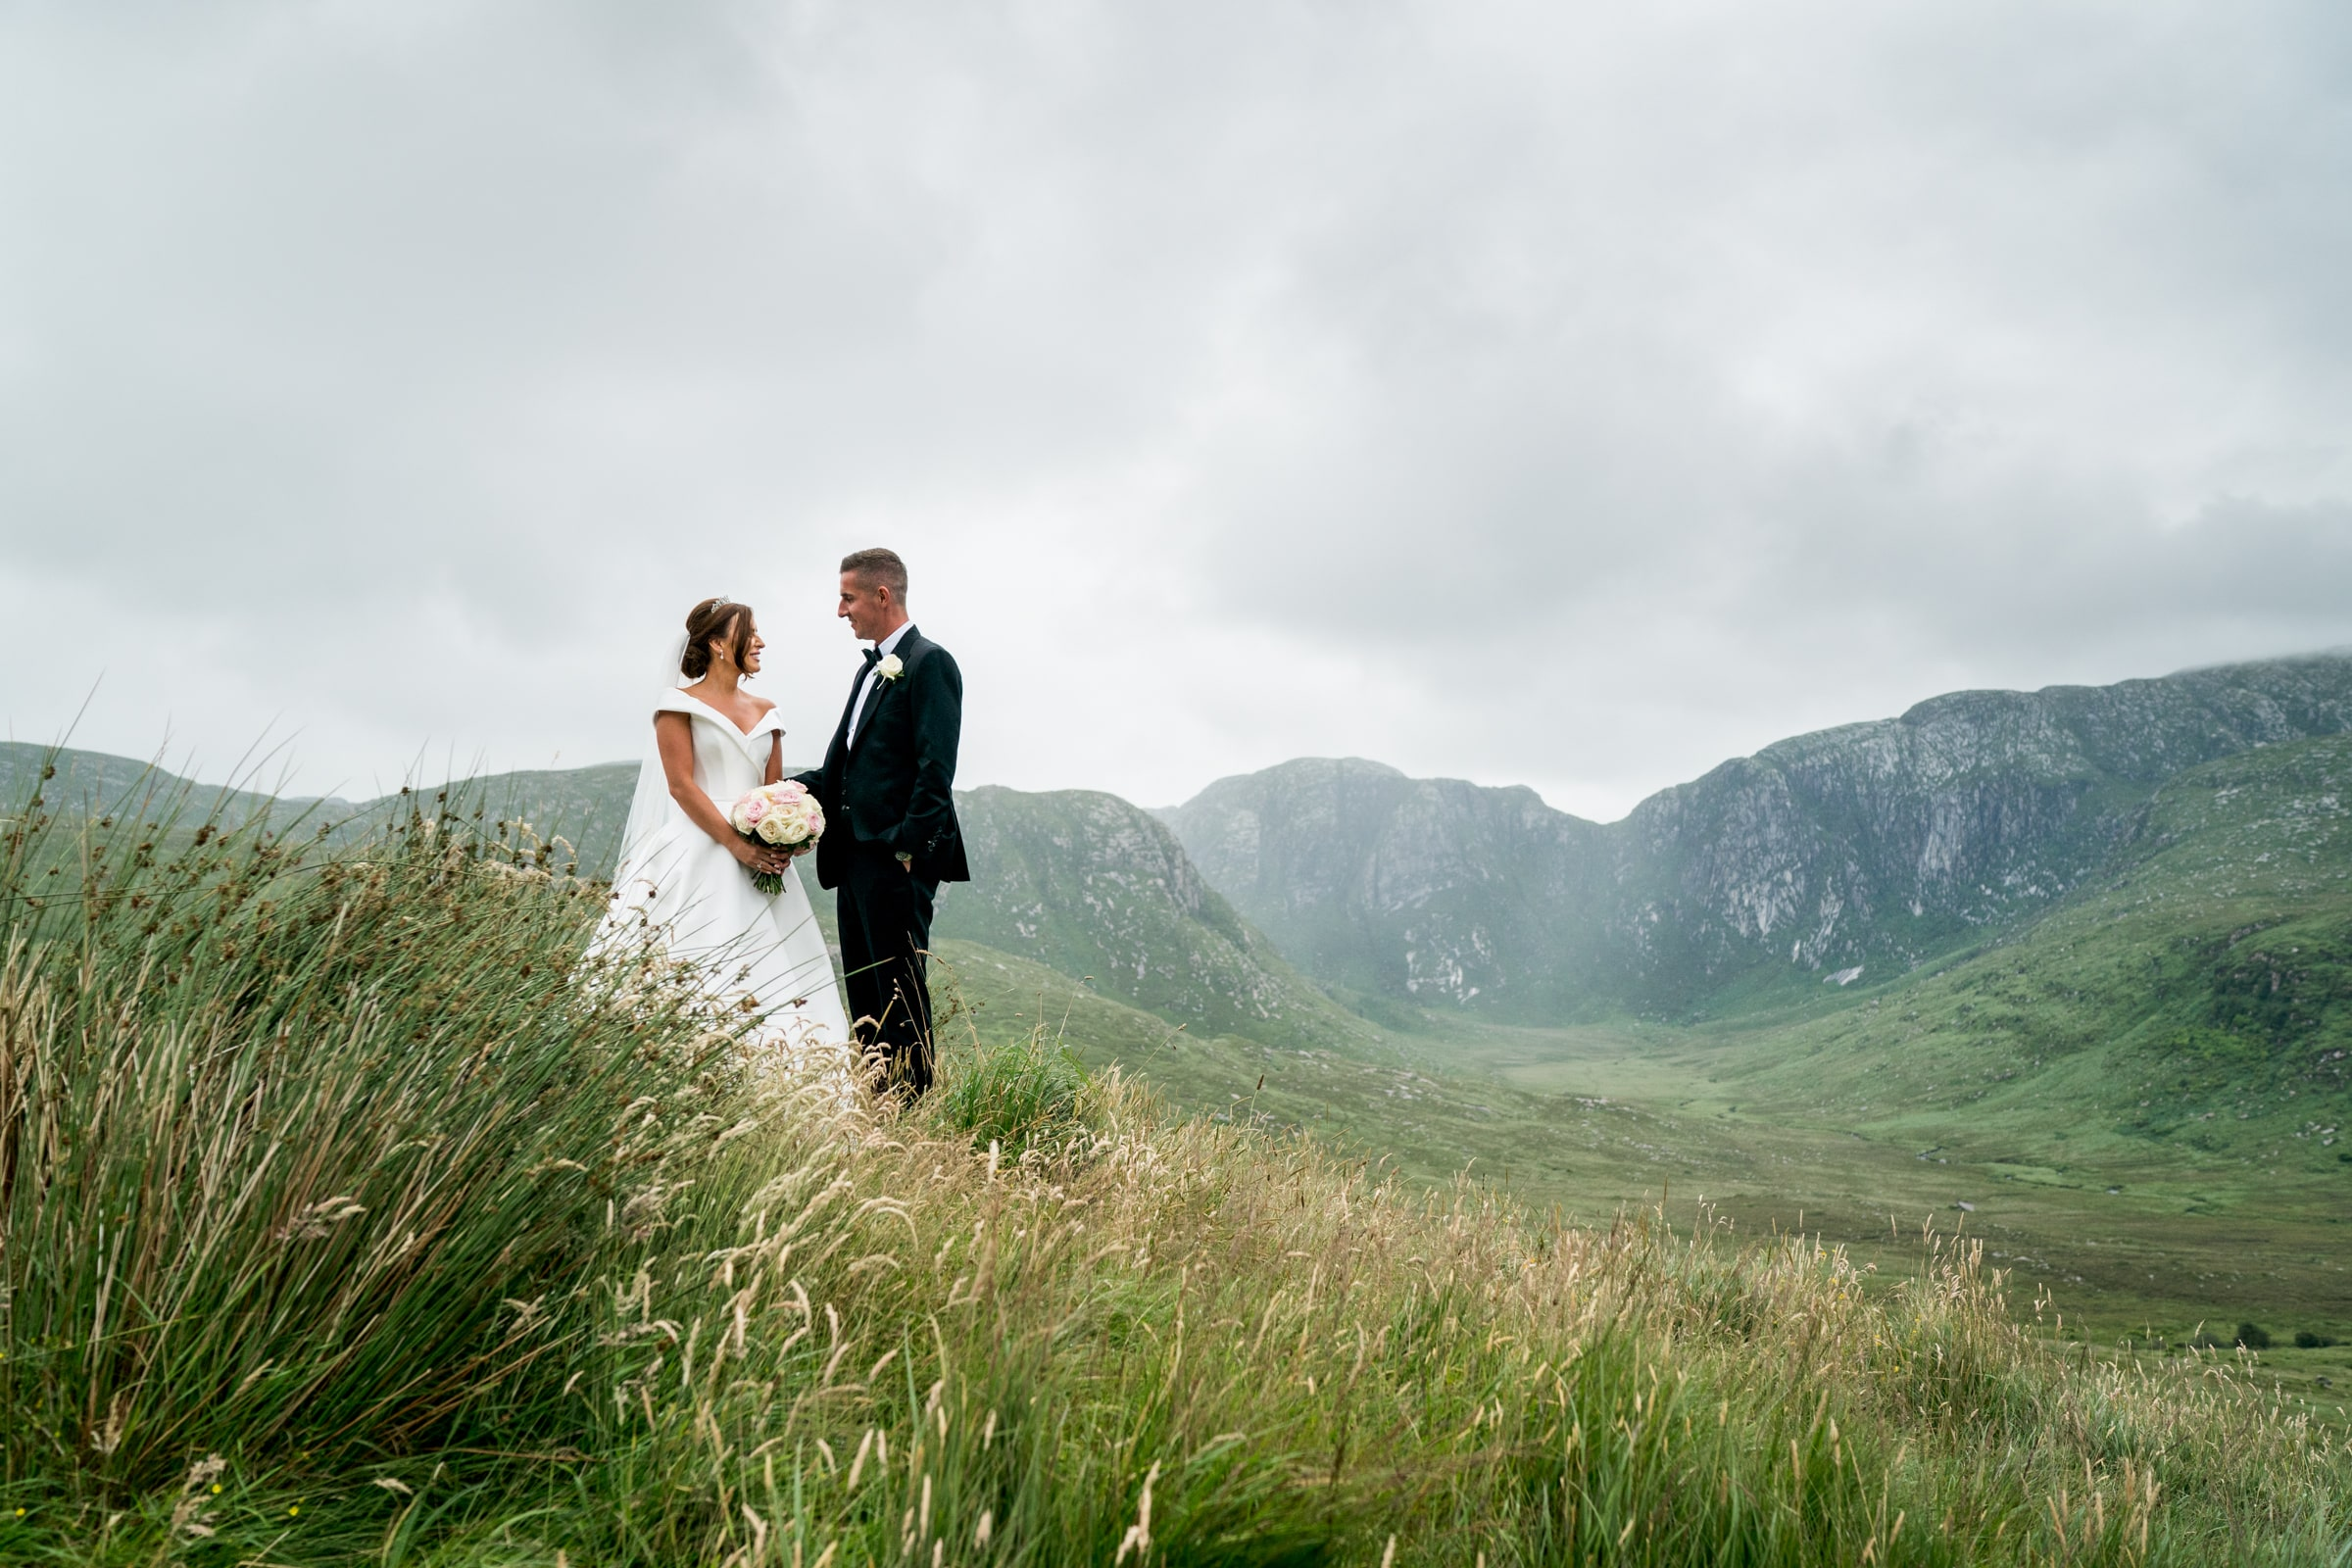 silver Tassie hotel wedding, donegal wedding venue, photographer donegal, bride and groom in the Poisoned Glen